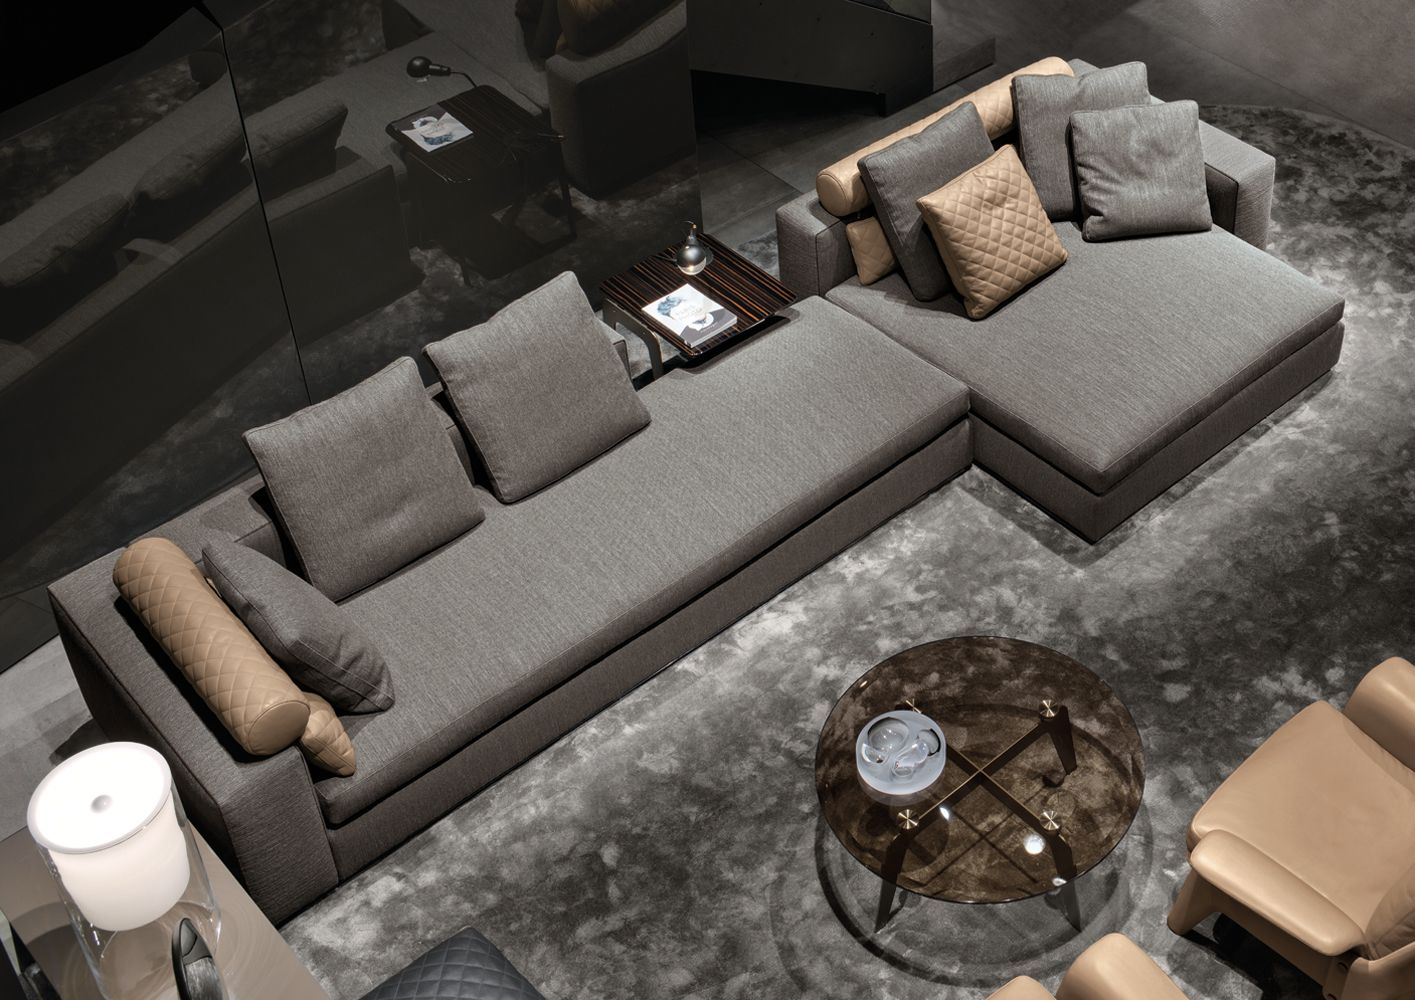 Minotti Ipad - LEONARD  DIVANI - IT  int  Pinterest  소파, 침대 및 가구